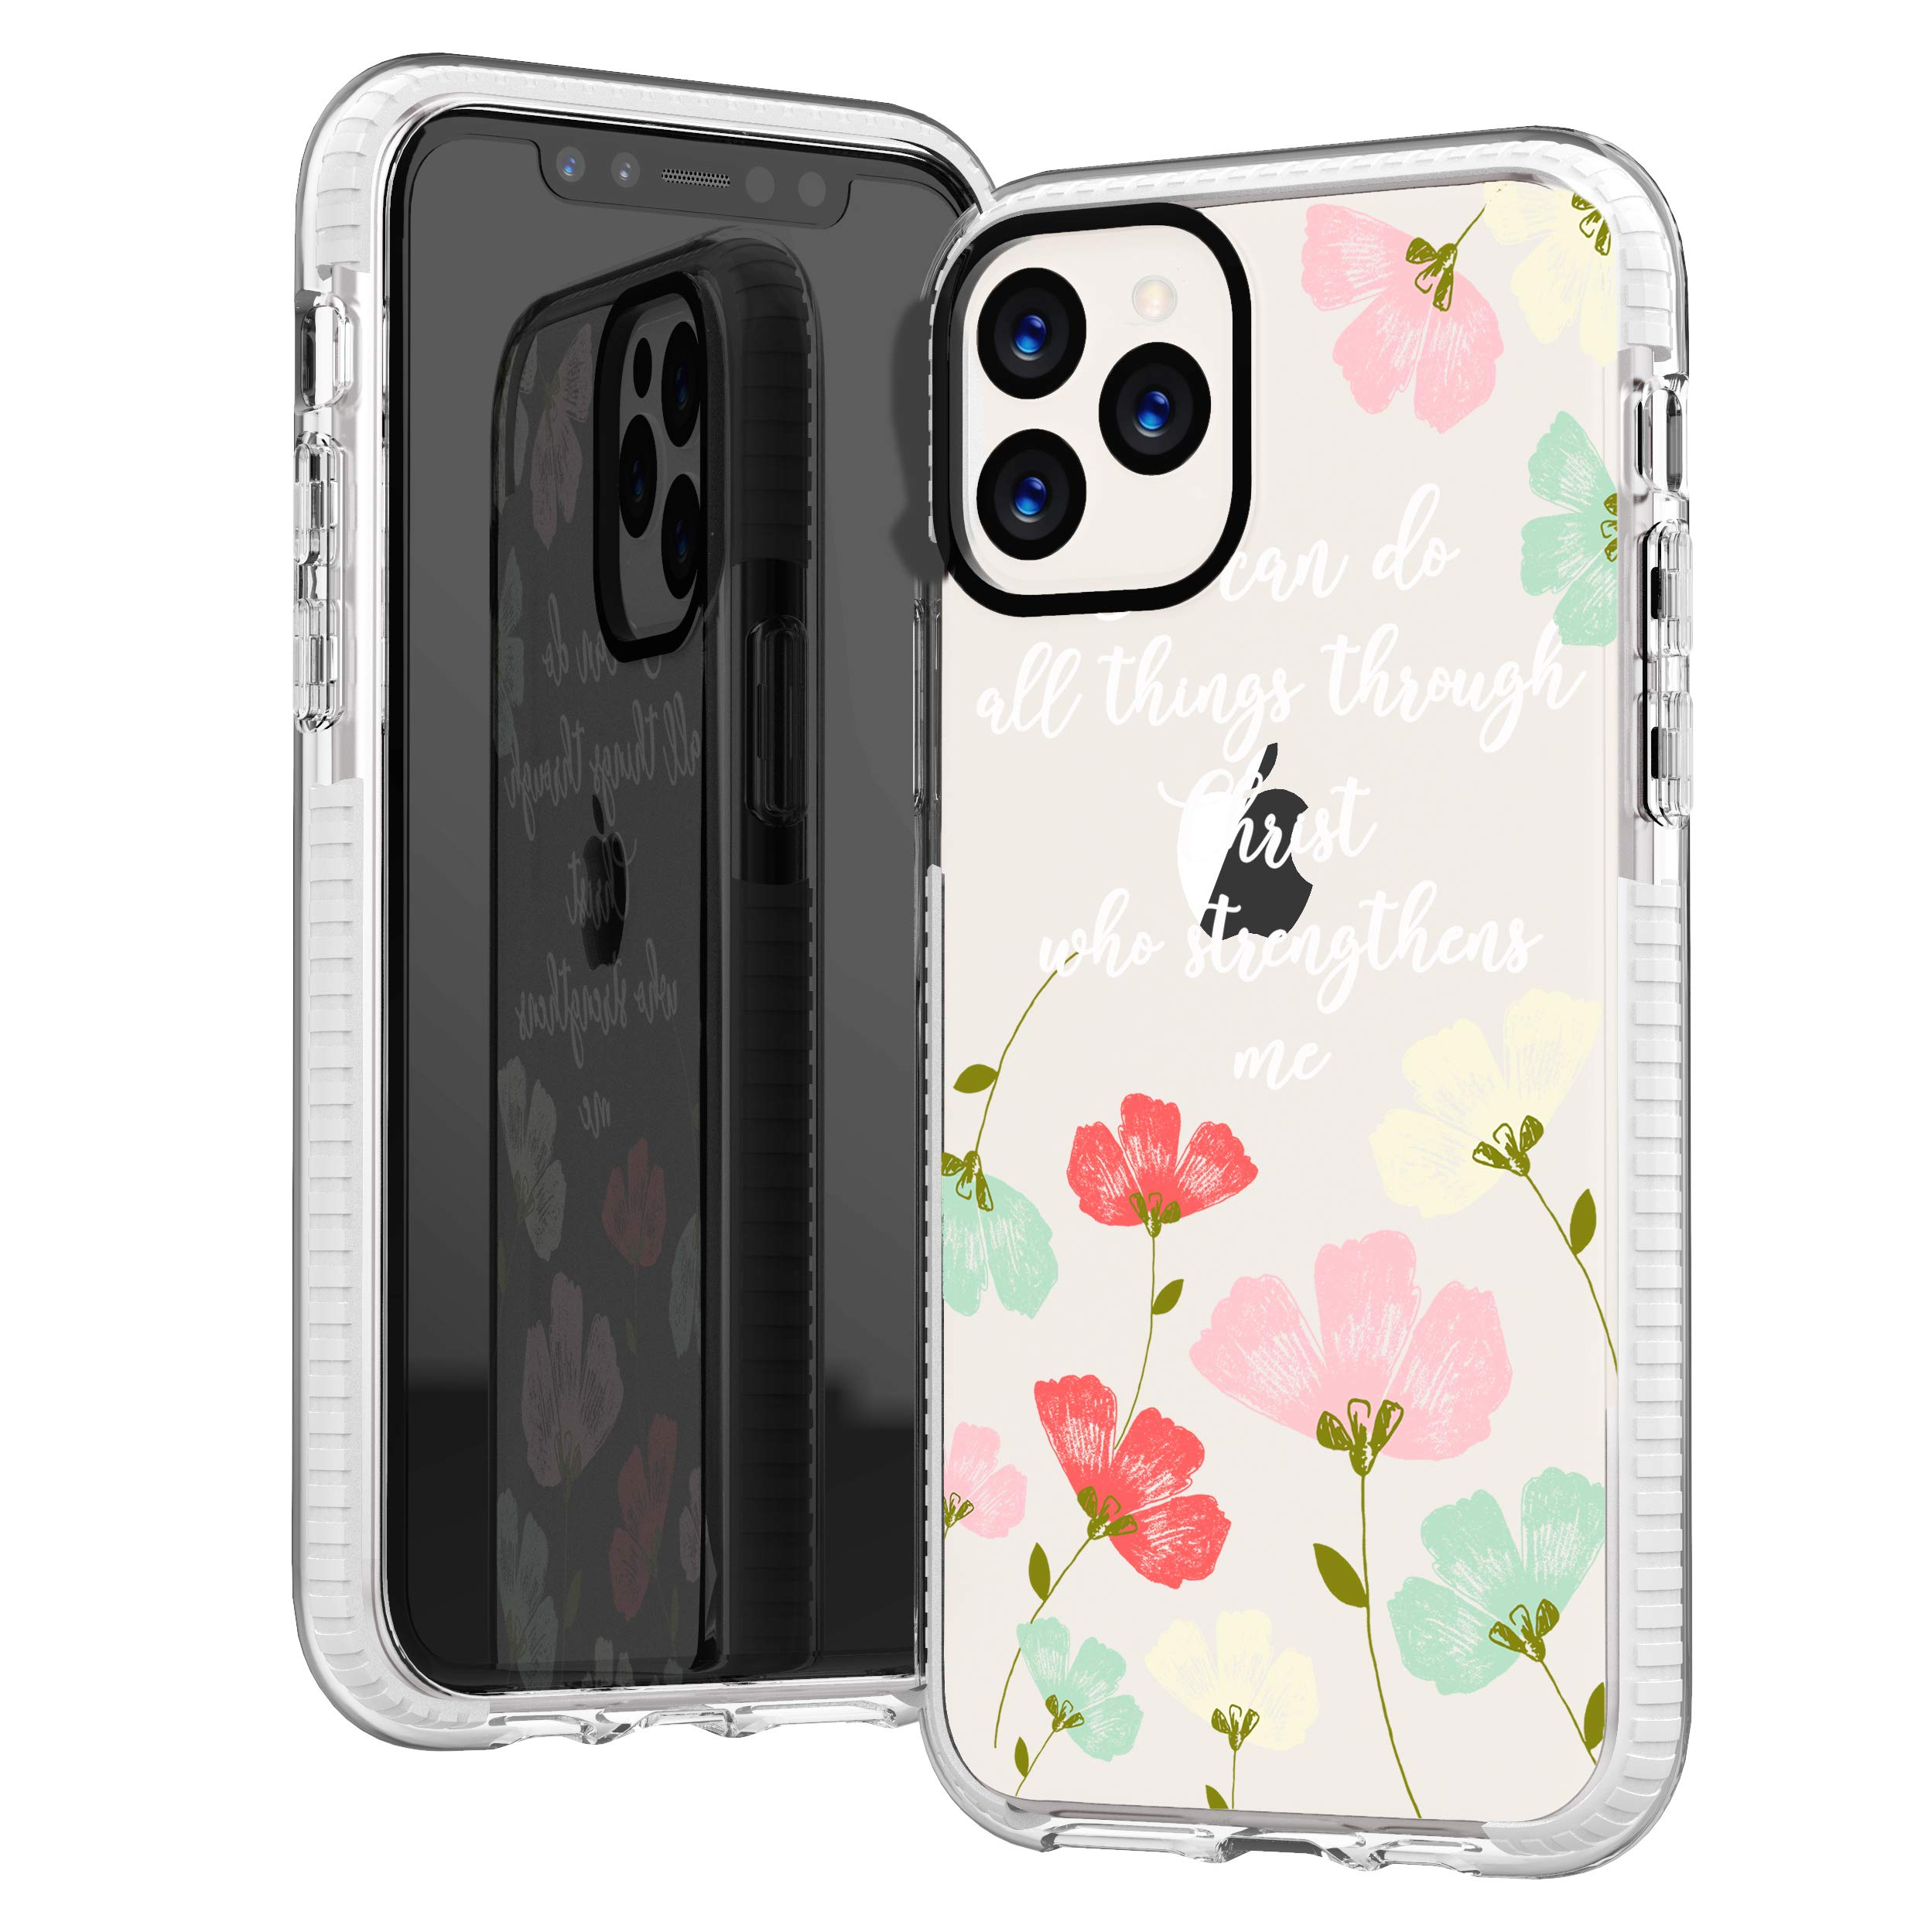 iPhone 11 Pro Max Case,Yellow Daisy Trendy Floral Flowers Bible Verses Motivational Girls Women Quotes I Can Do All Things Through Christ Soft Protective Clear Case Compatible for iPhone 11 Pro Max